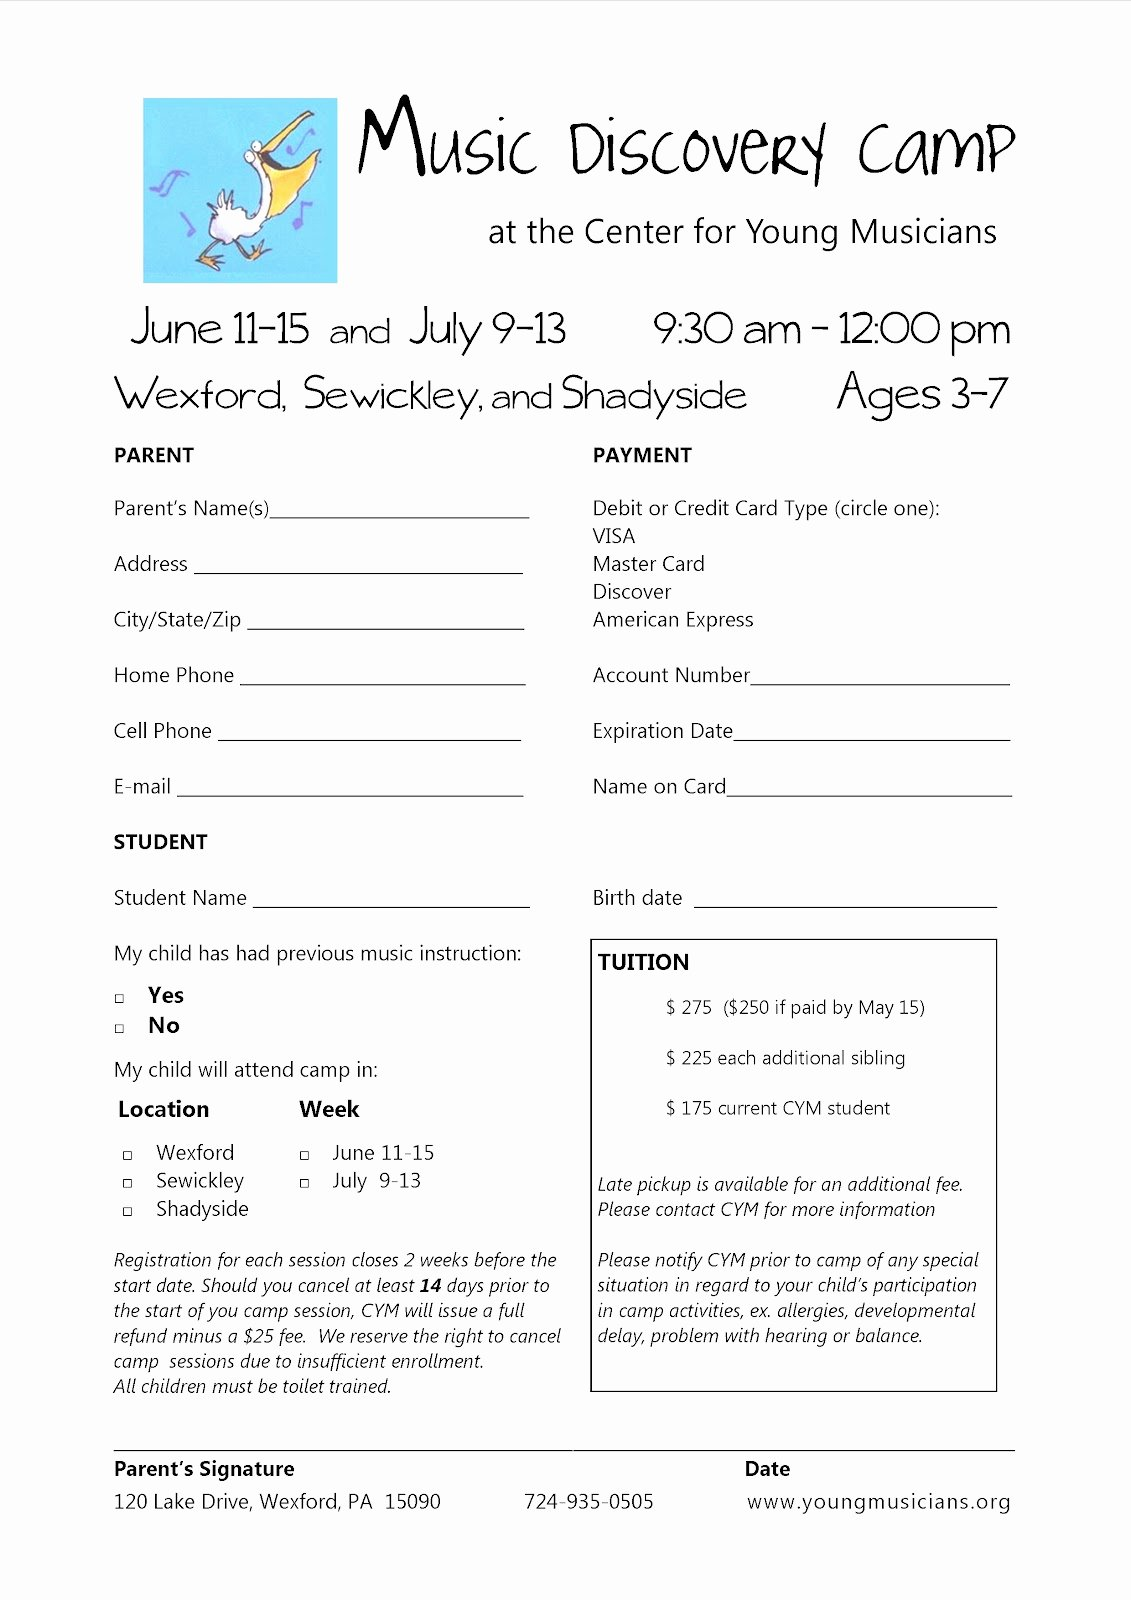 Summer Camp Registration form Template Lovely Take Note Music Discovery Camp 2012 Registering now